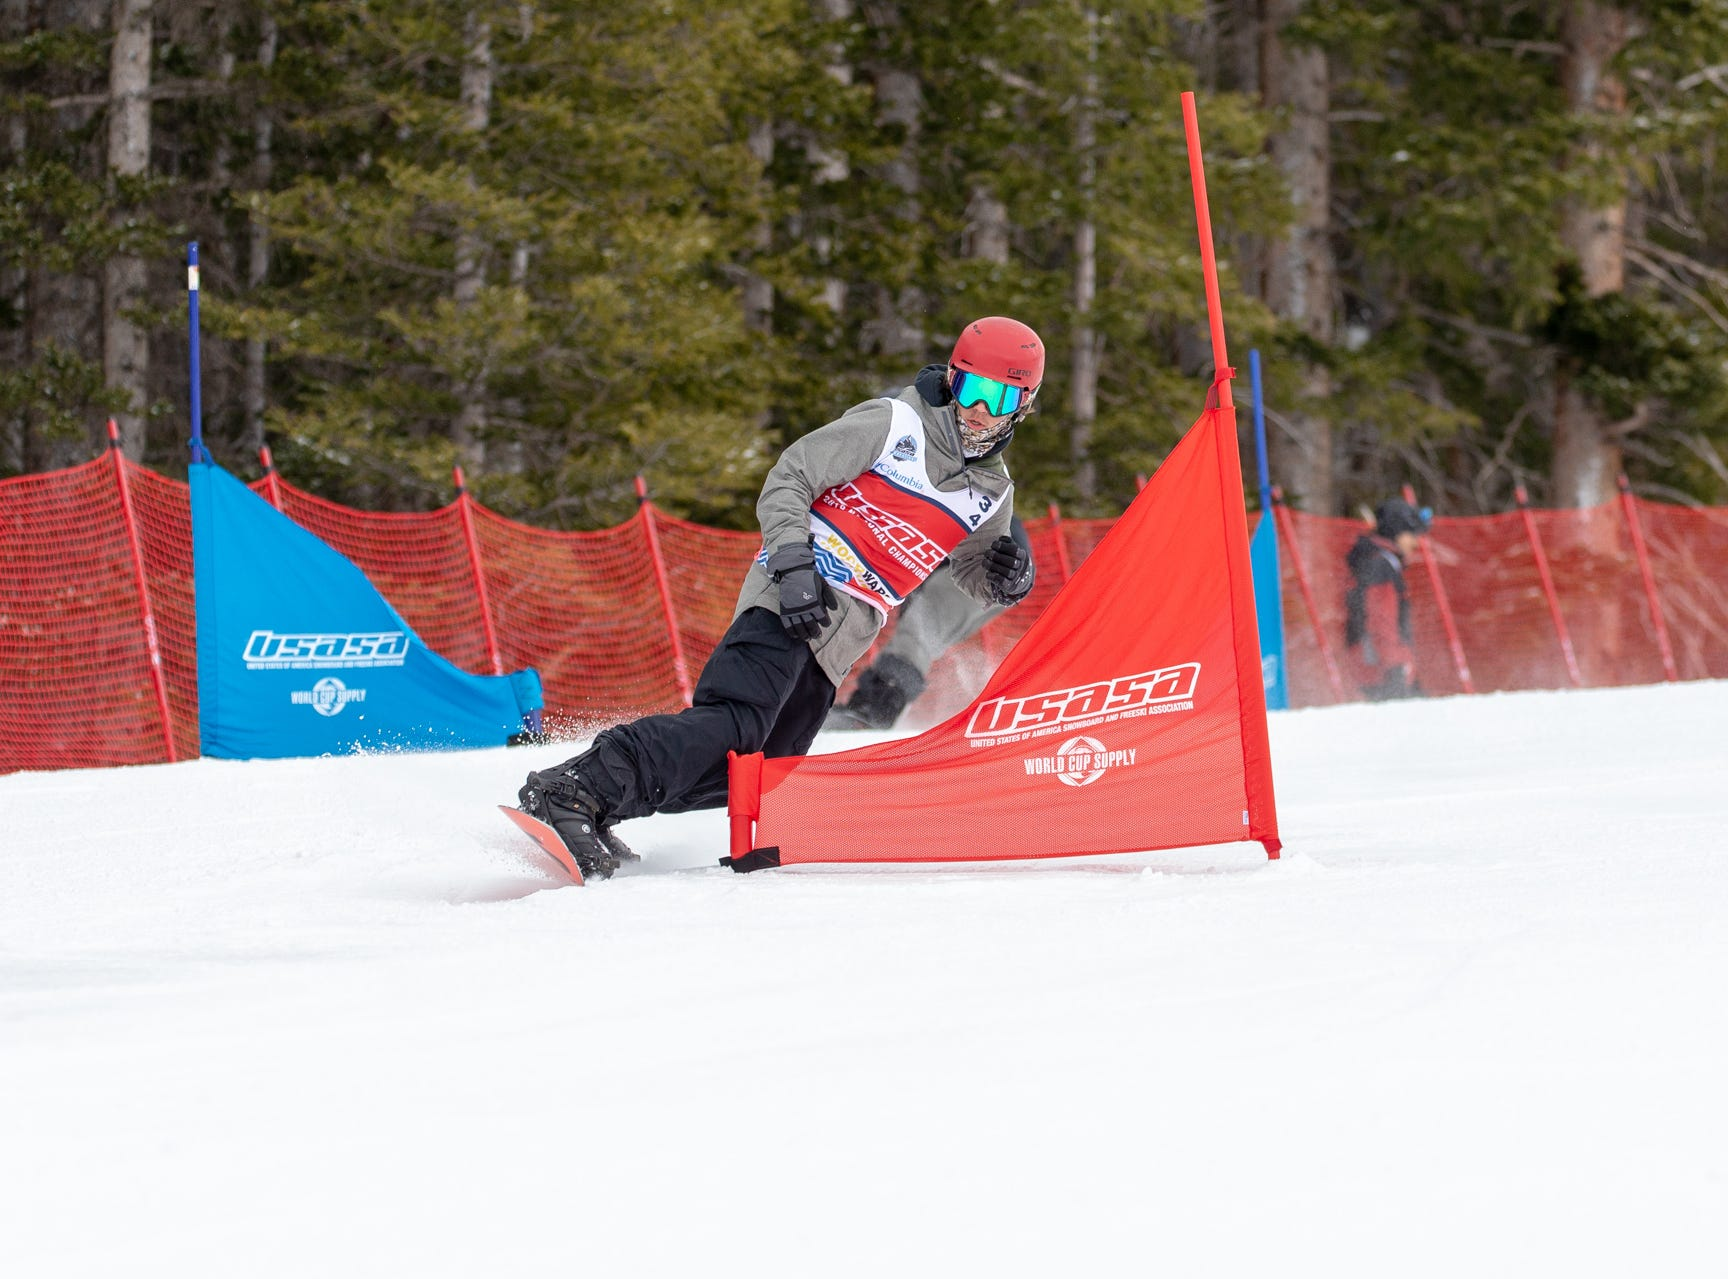 Gabe Rubanowitz of Shasta High / North State snowboarders compete at the 2019 USASA National Championships at Copper Mountain in Colorado.